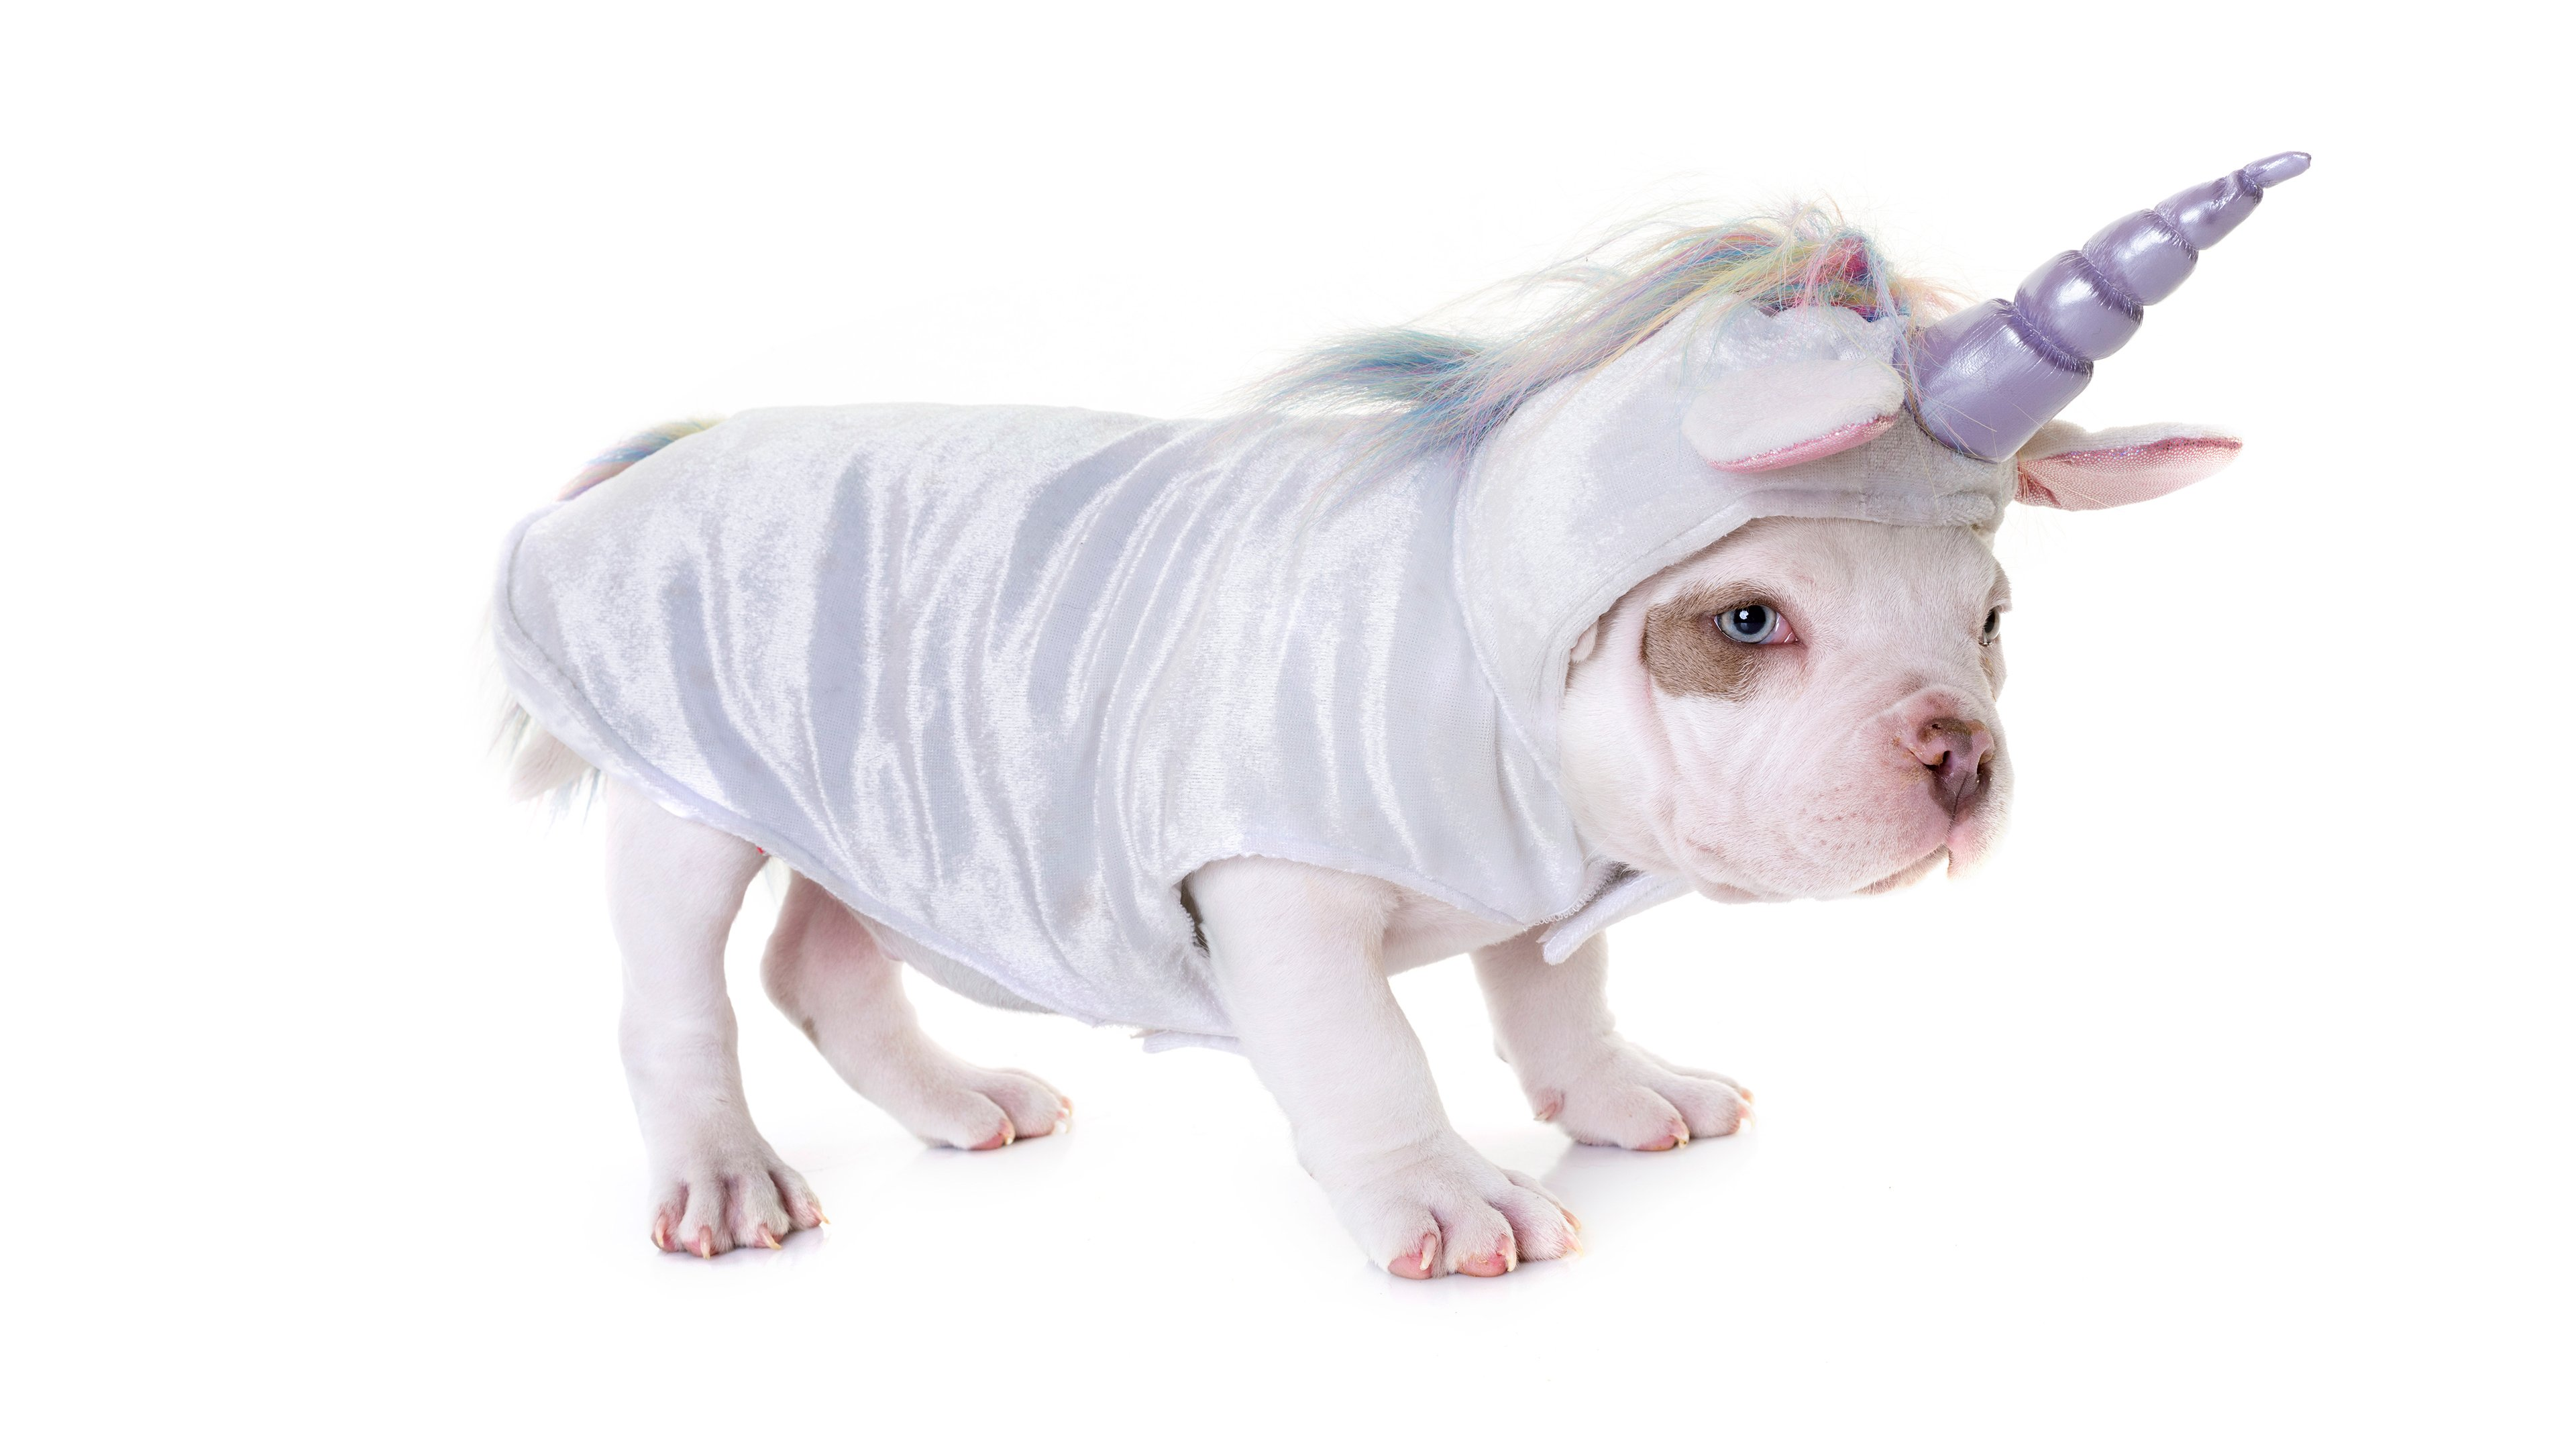 Unicorn Puppies Wallpapers - Wallpaper Cave